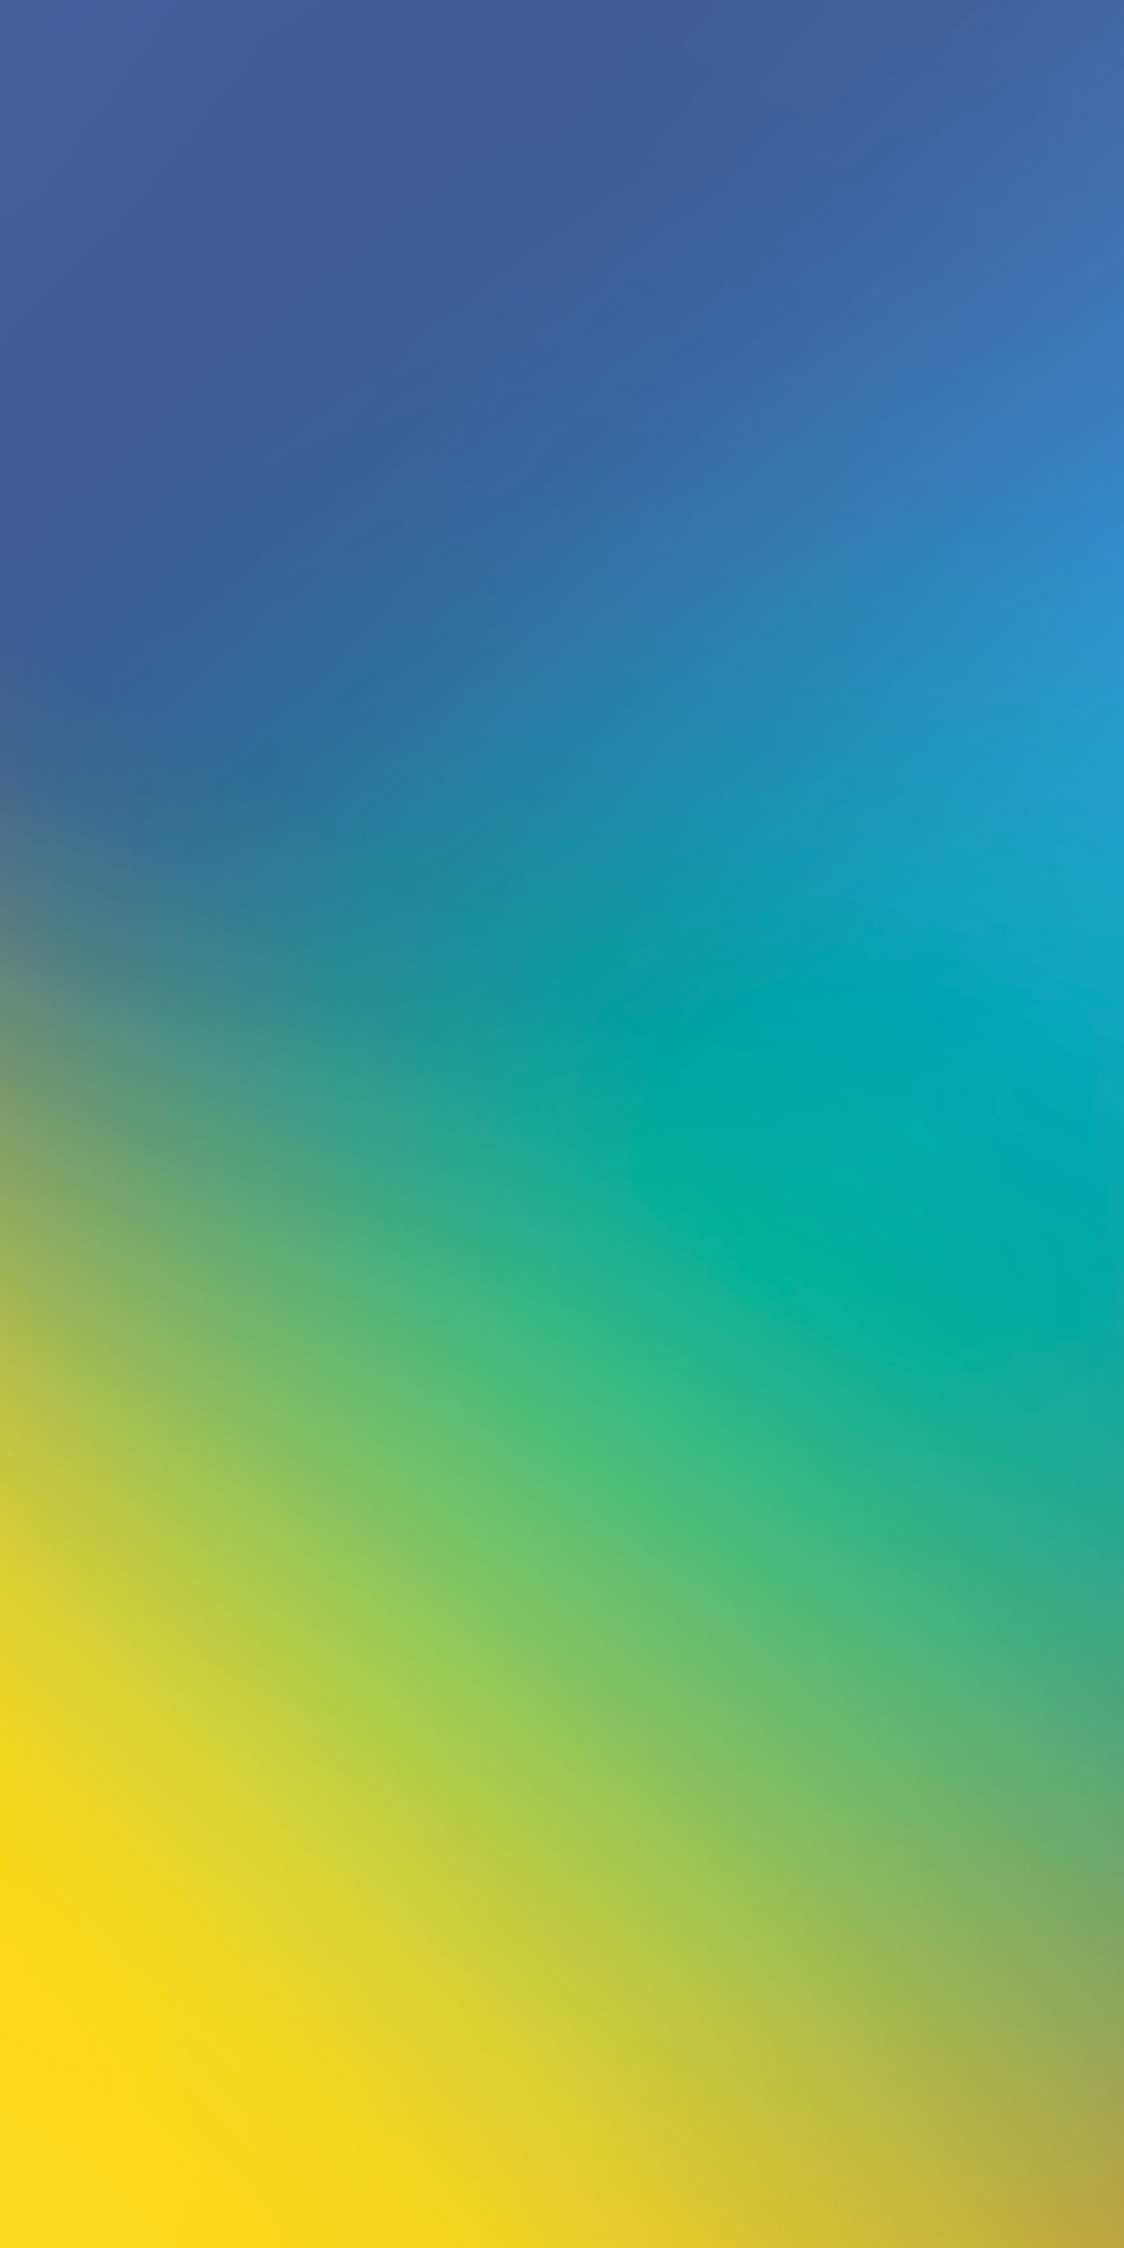 Blue and Yellow Gradient Background iPhone Wallpaper